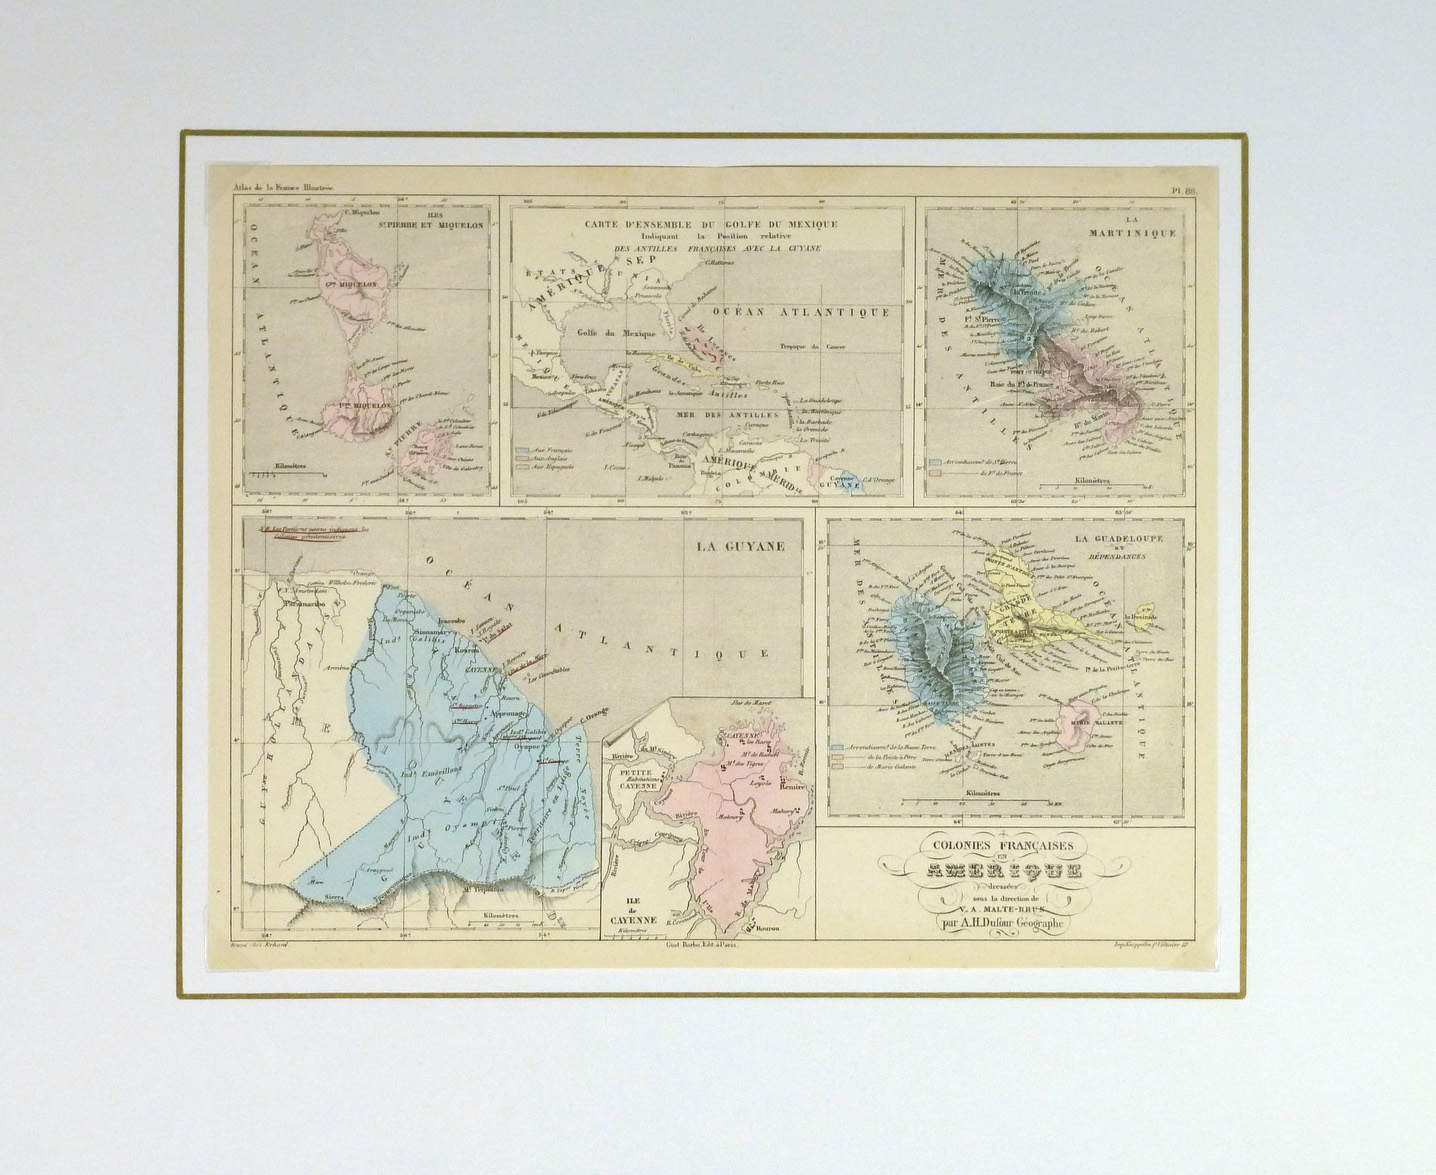 French American Colonies, 1860-matted-8123K